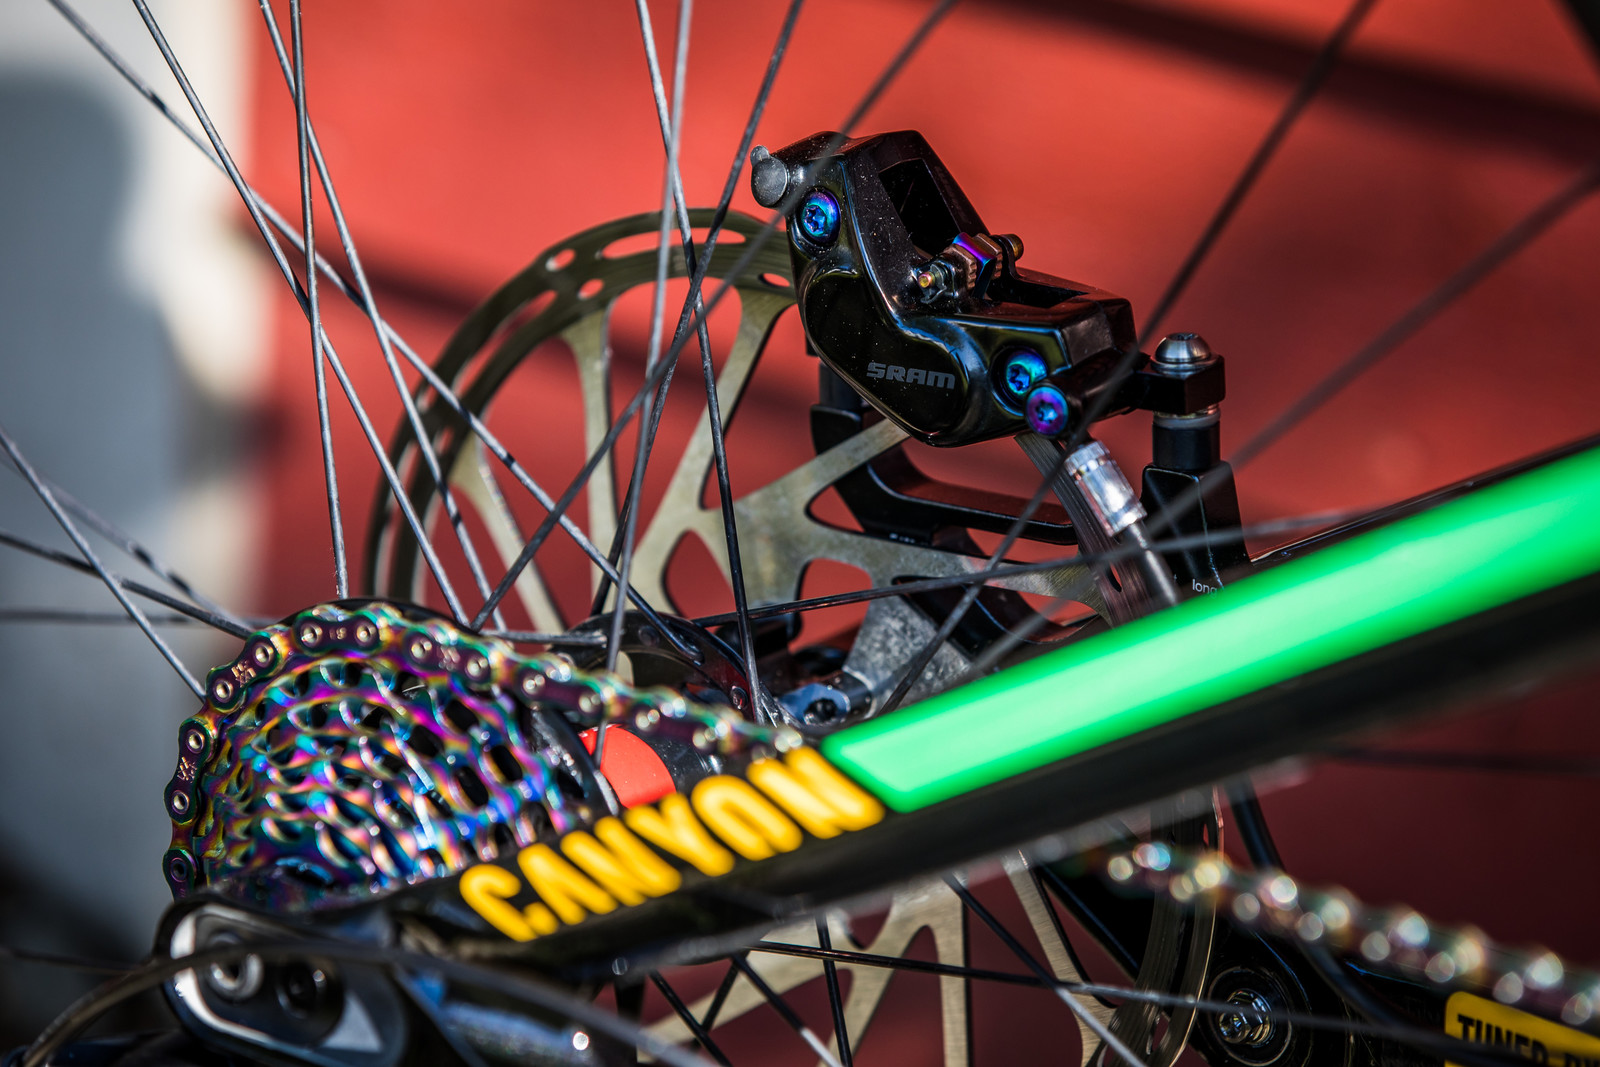 Kye A'Hern's Canyon Sender for World Championships - Kye A'Hern's Canyon Sender for World Championships - Mountain Biking Pictures - Vital MTB